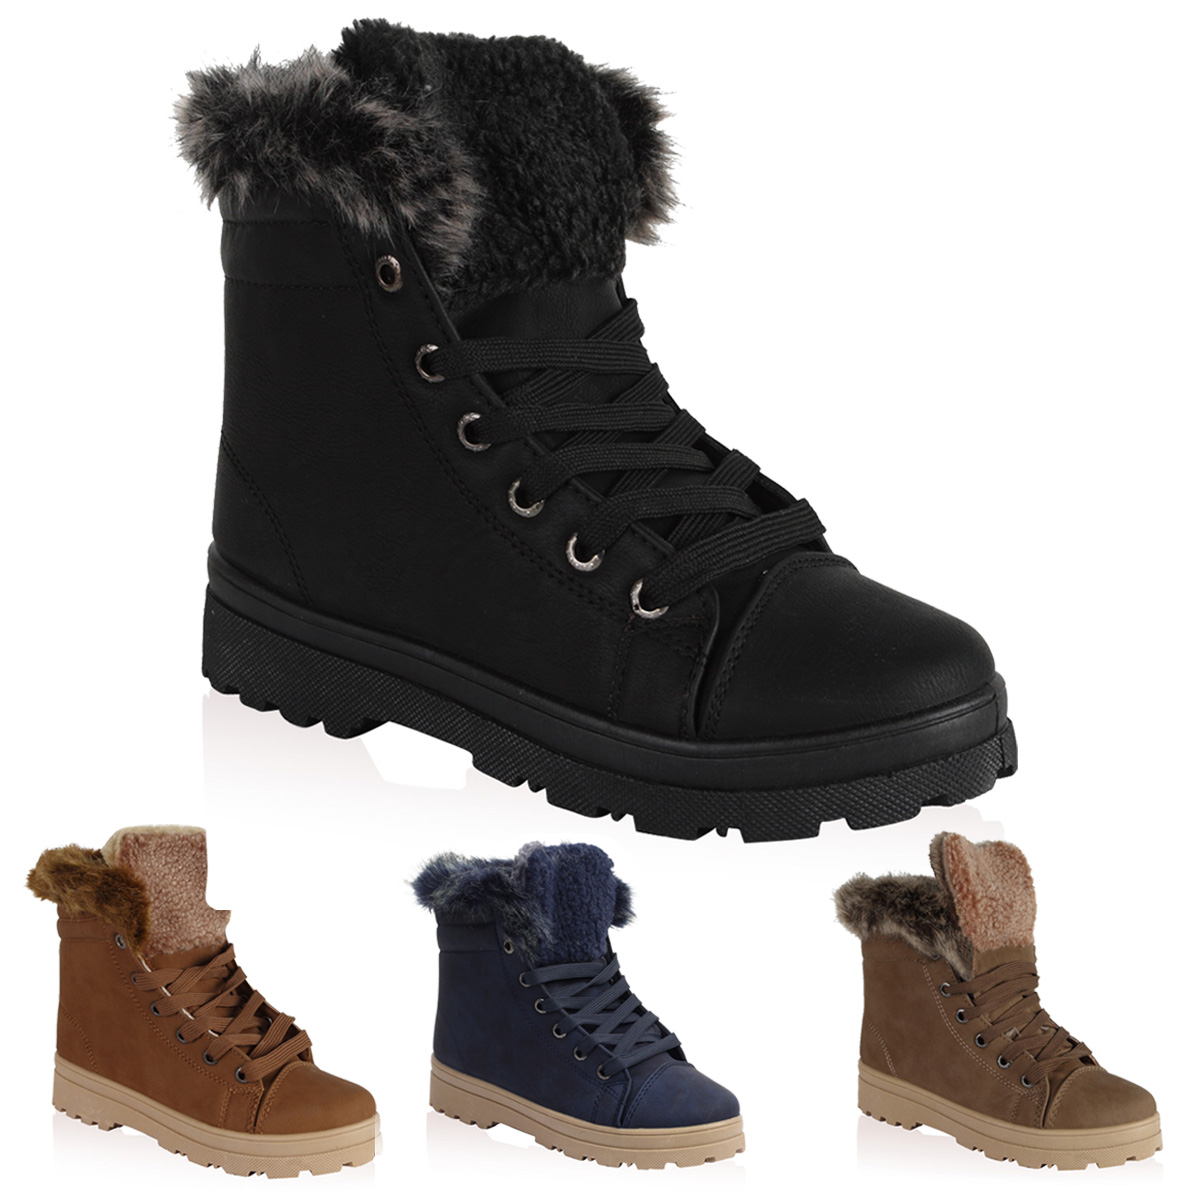 Popular HighQualityWomenSnowBoots2016WinterBootsLaceUpAnkleCasual